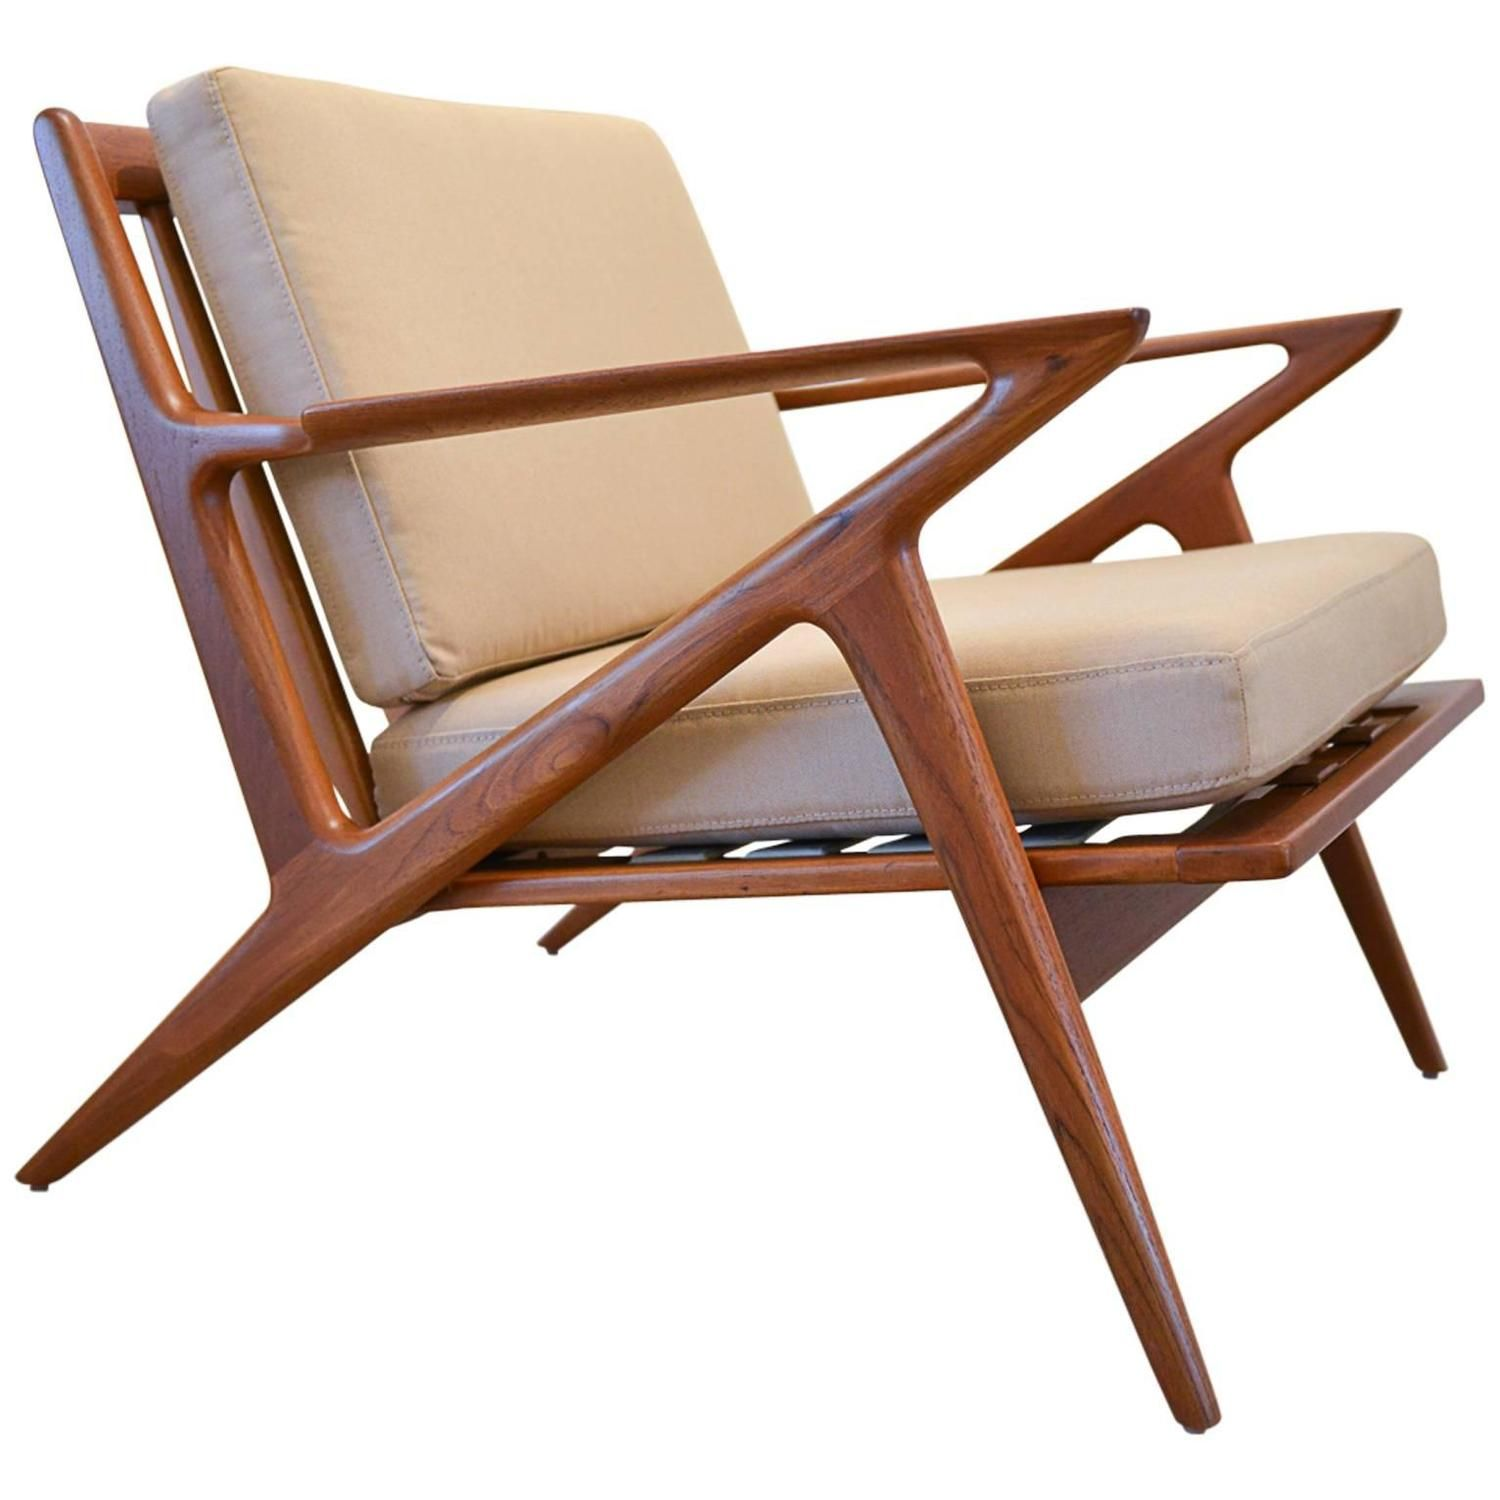 Z Lounge Chair by Poul Jensen for Selig  Wood chair design, Chair